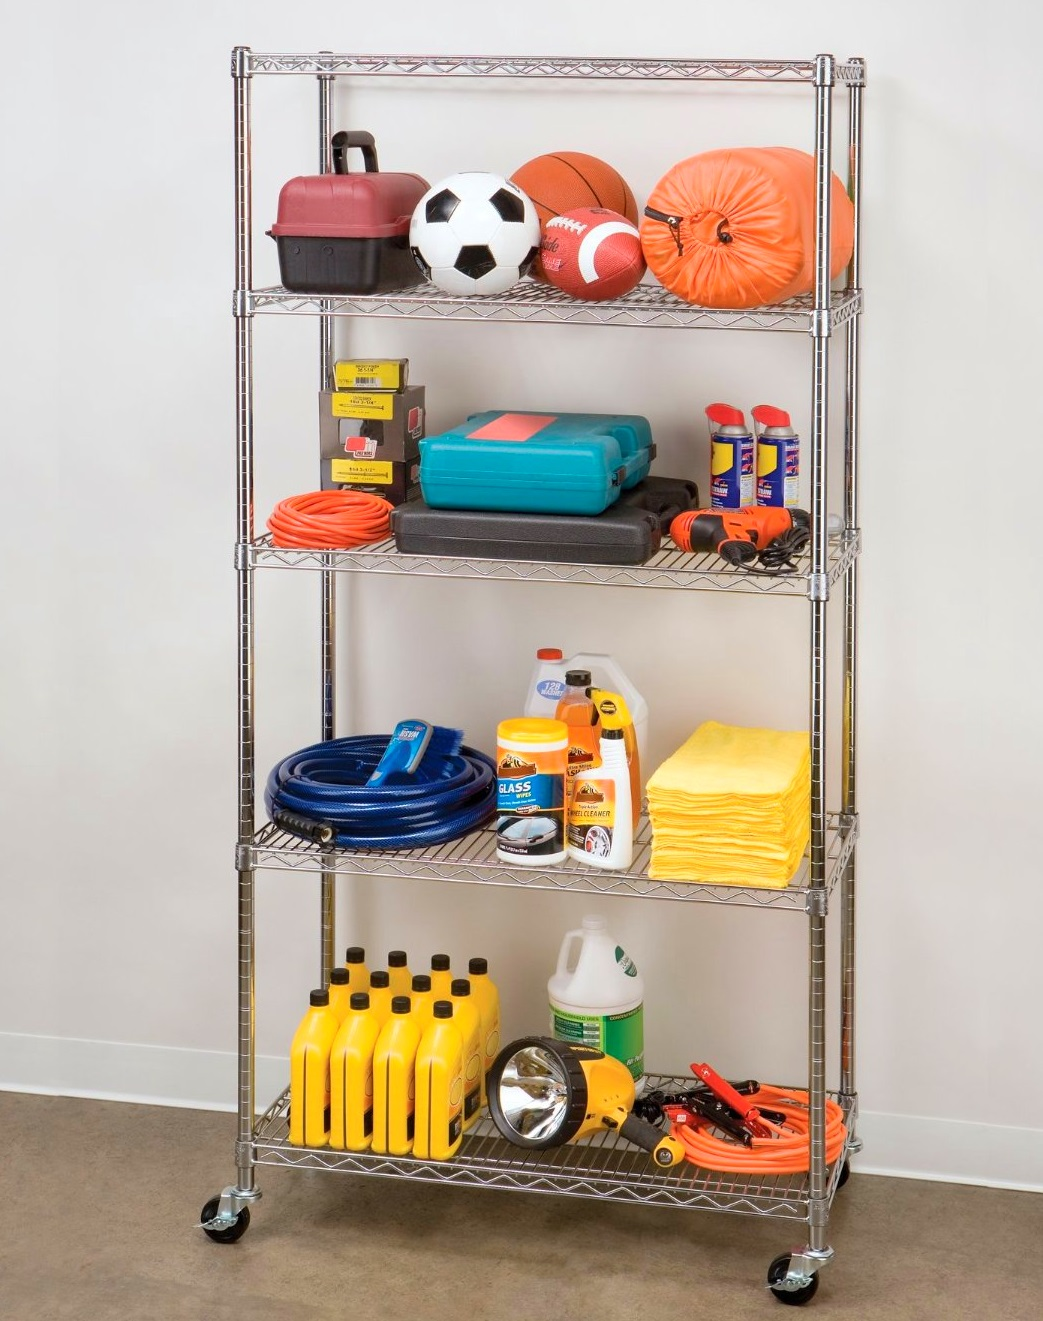 Smart Garage Organization Ideas - Use a rack to help organize clutter the garage